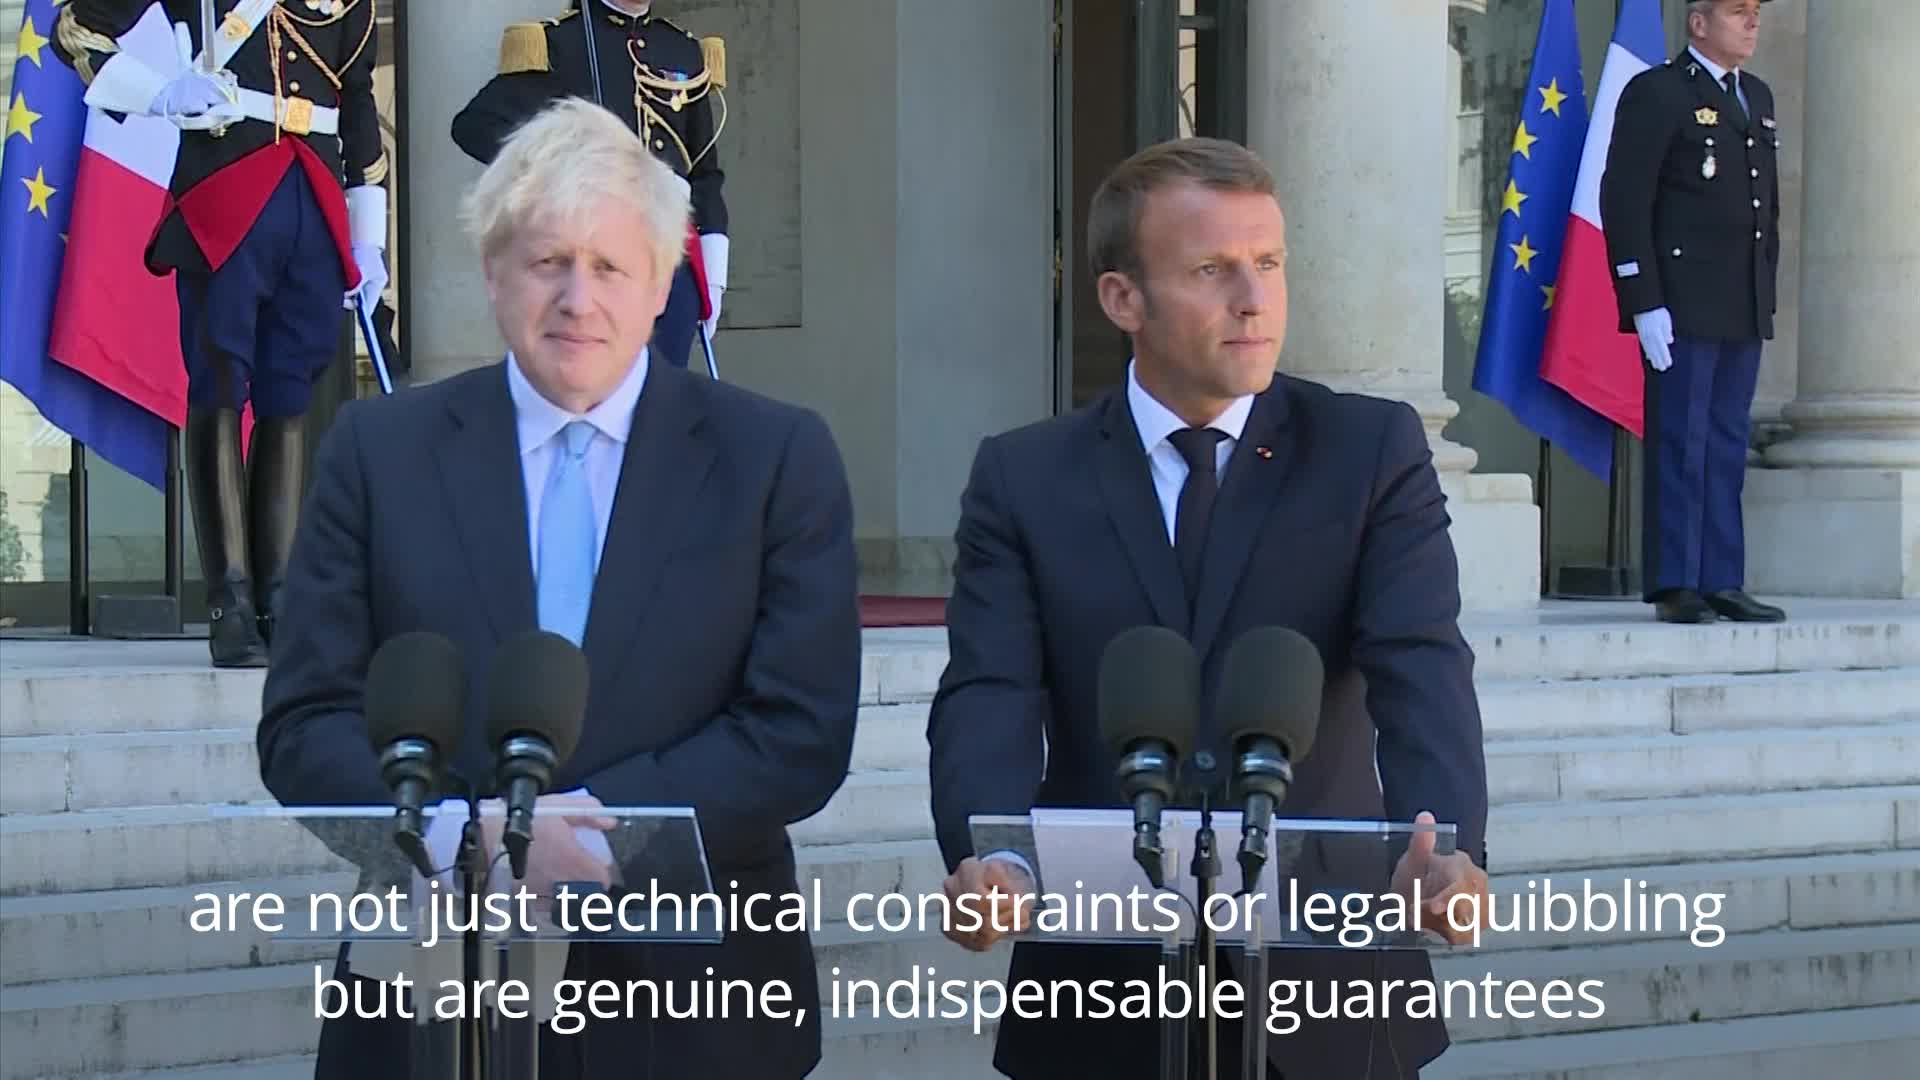 Emmanuel Macron Warns Boris Johnson Of 'Indispensable' Irish Backstop Amid New Brexit Deal Hopes